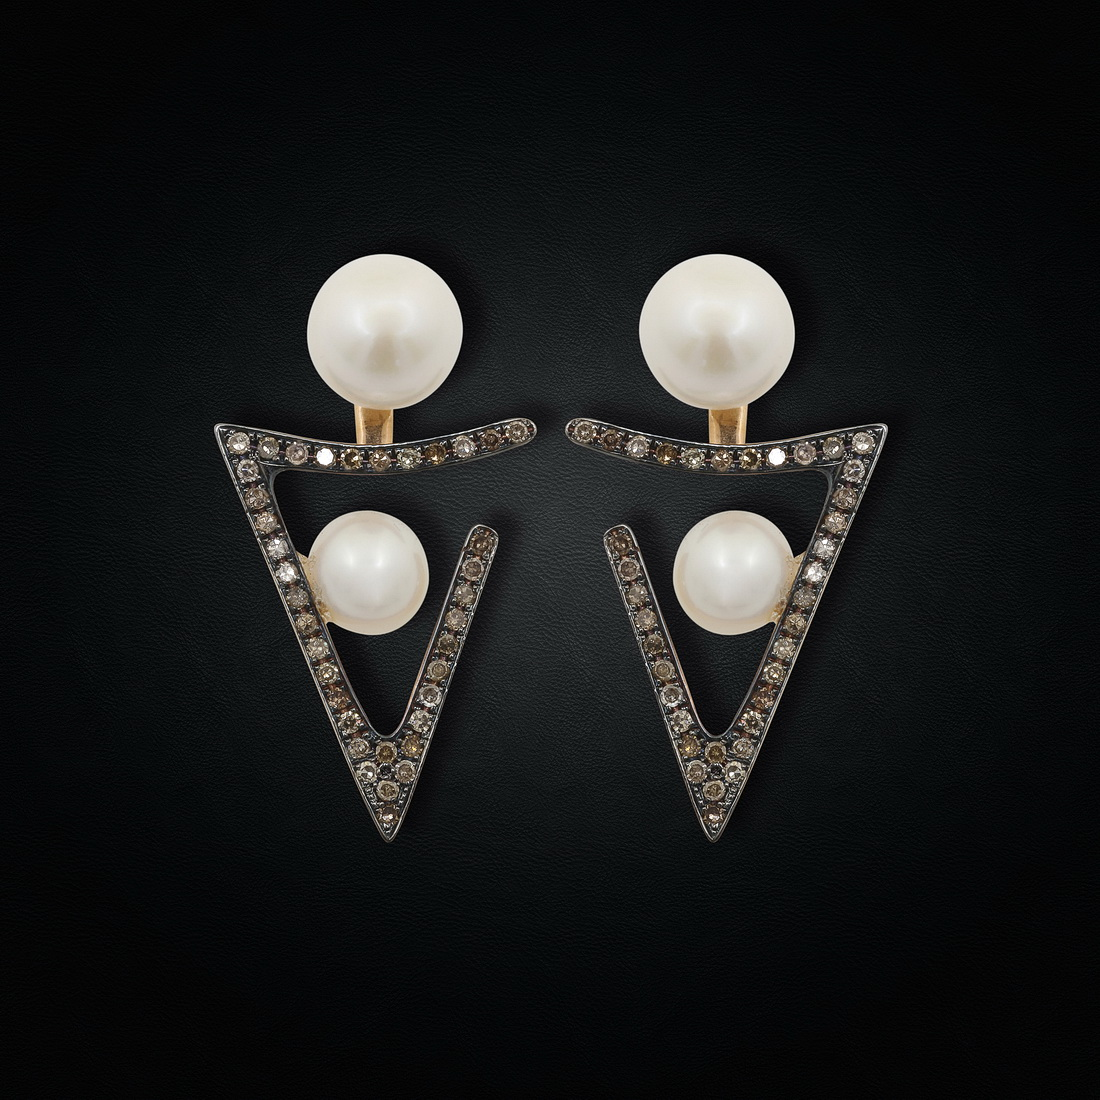 Pearl & Black Diamond earrings